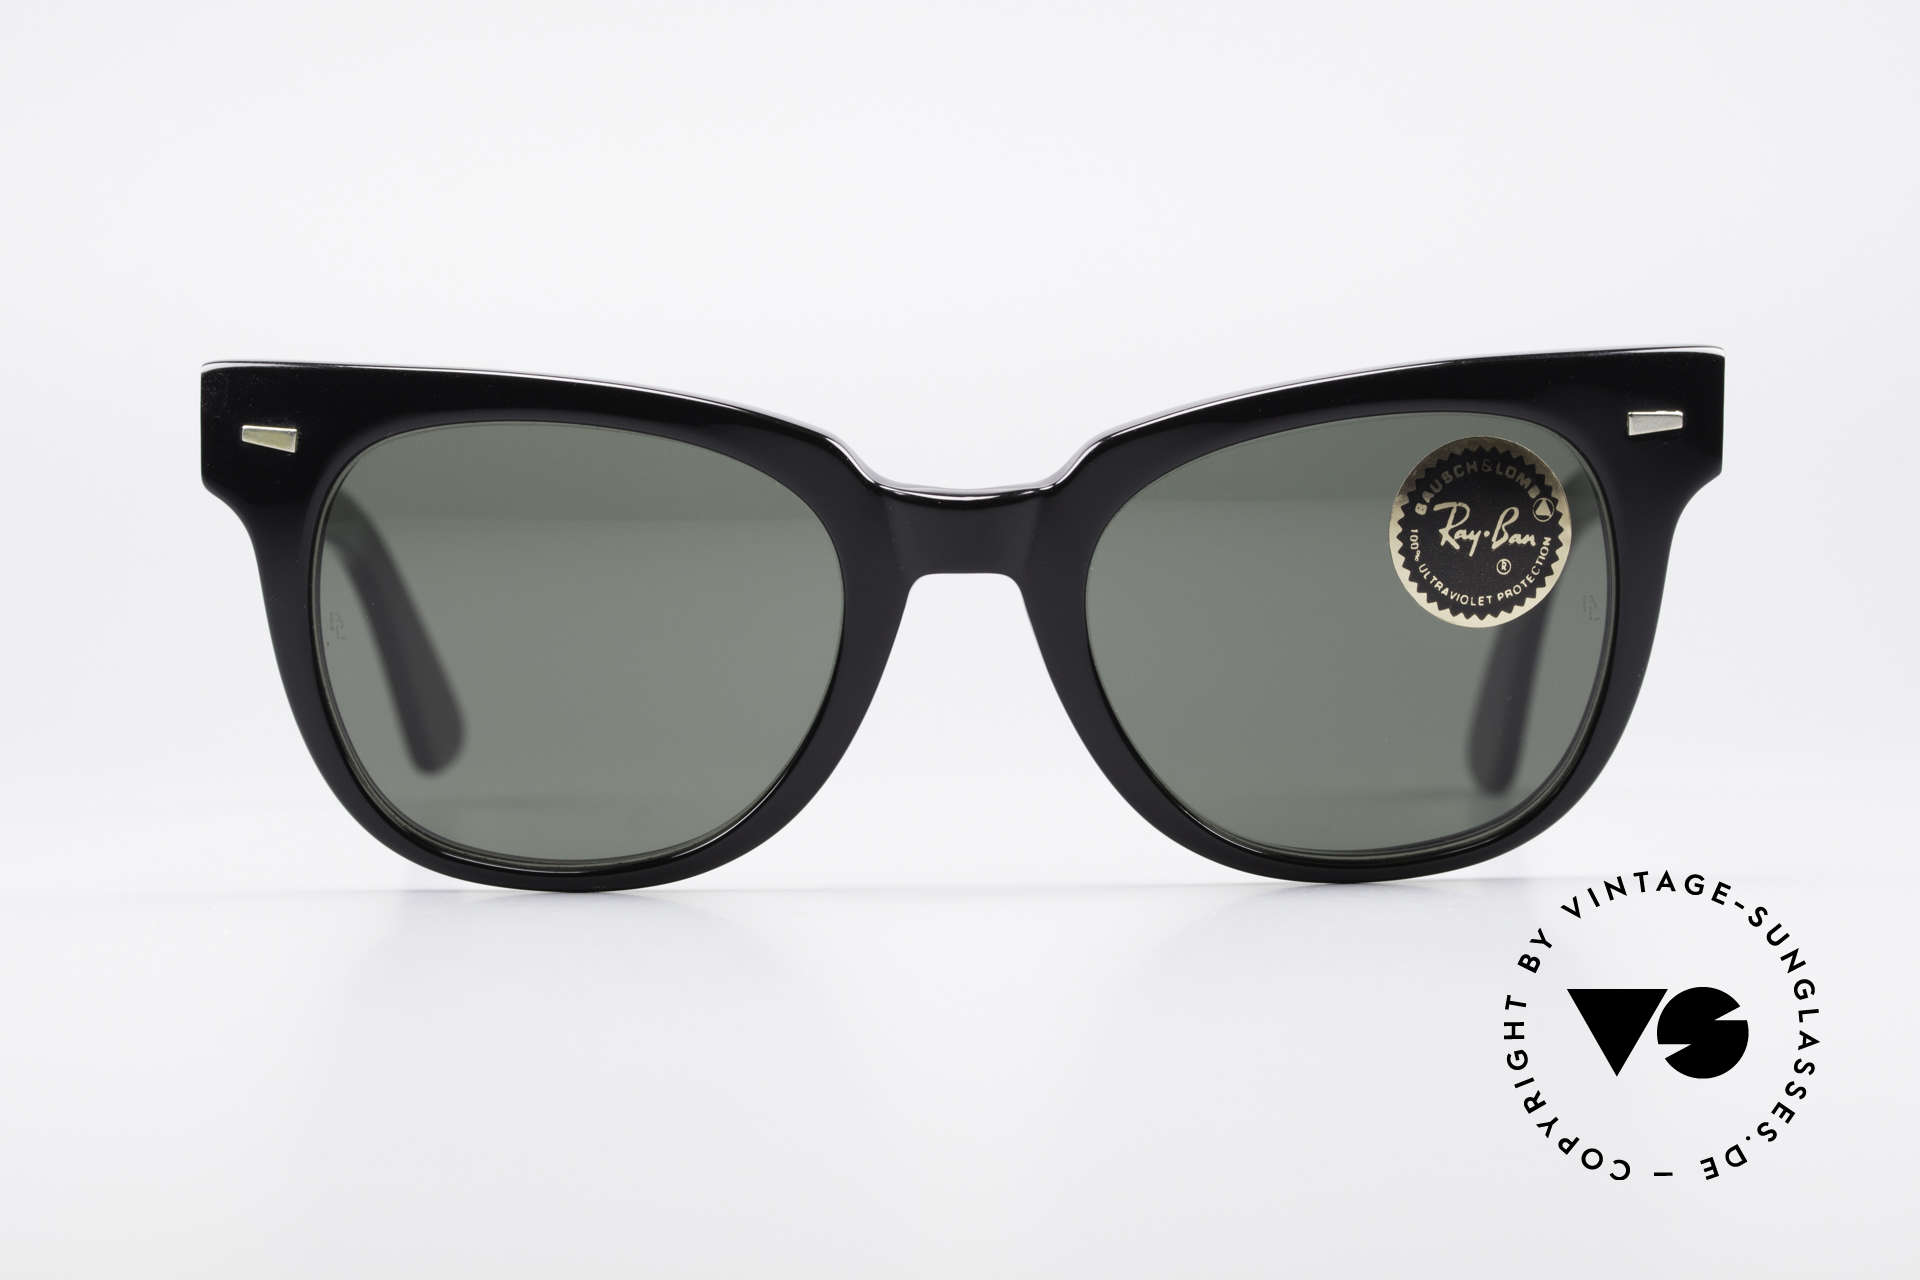 Ray Ban Meteor Old Vintage USA Sunglasses, classic timeless design in best U.S.A. quality, Made for Men and Women